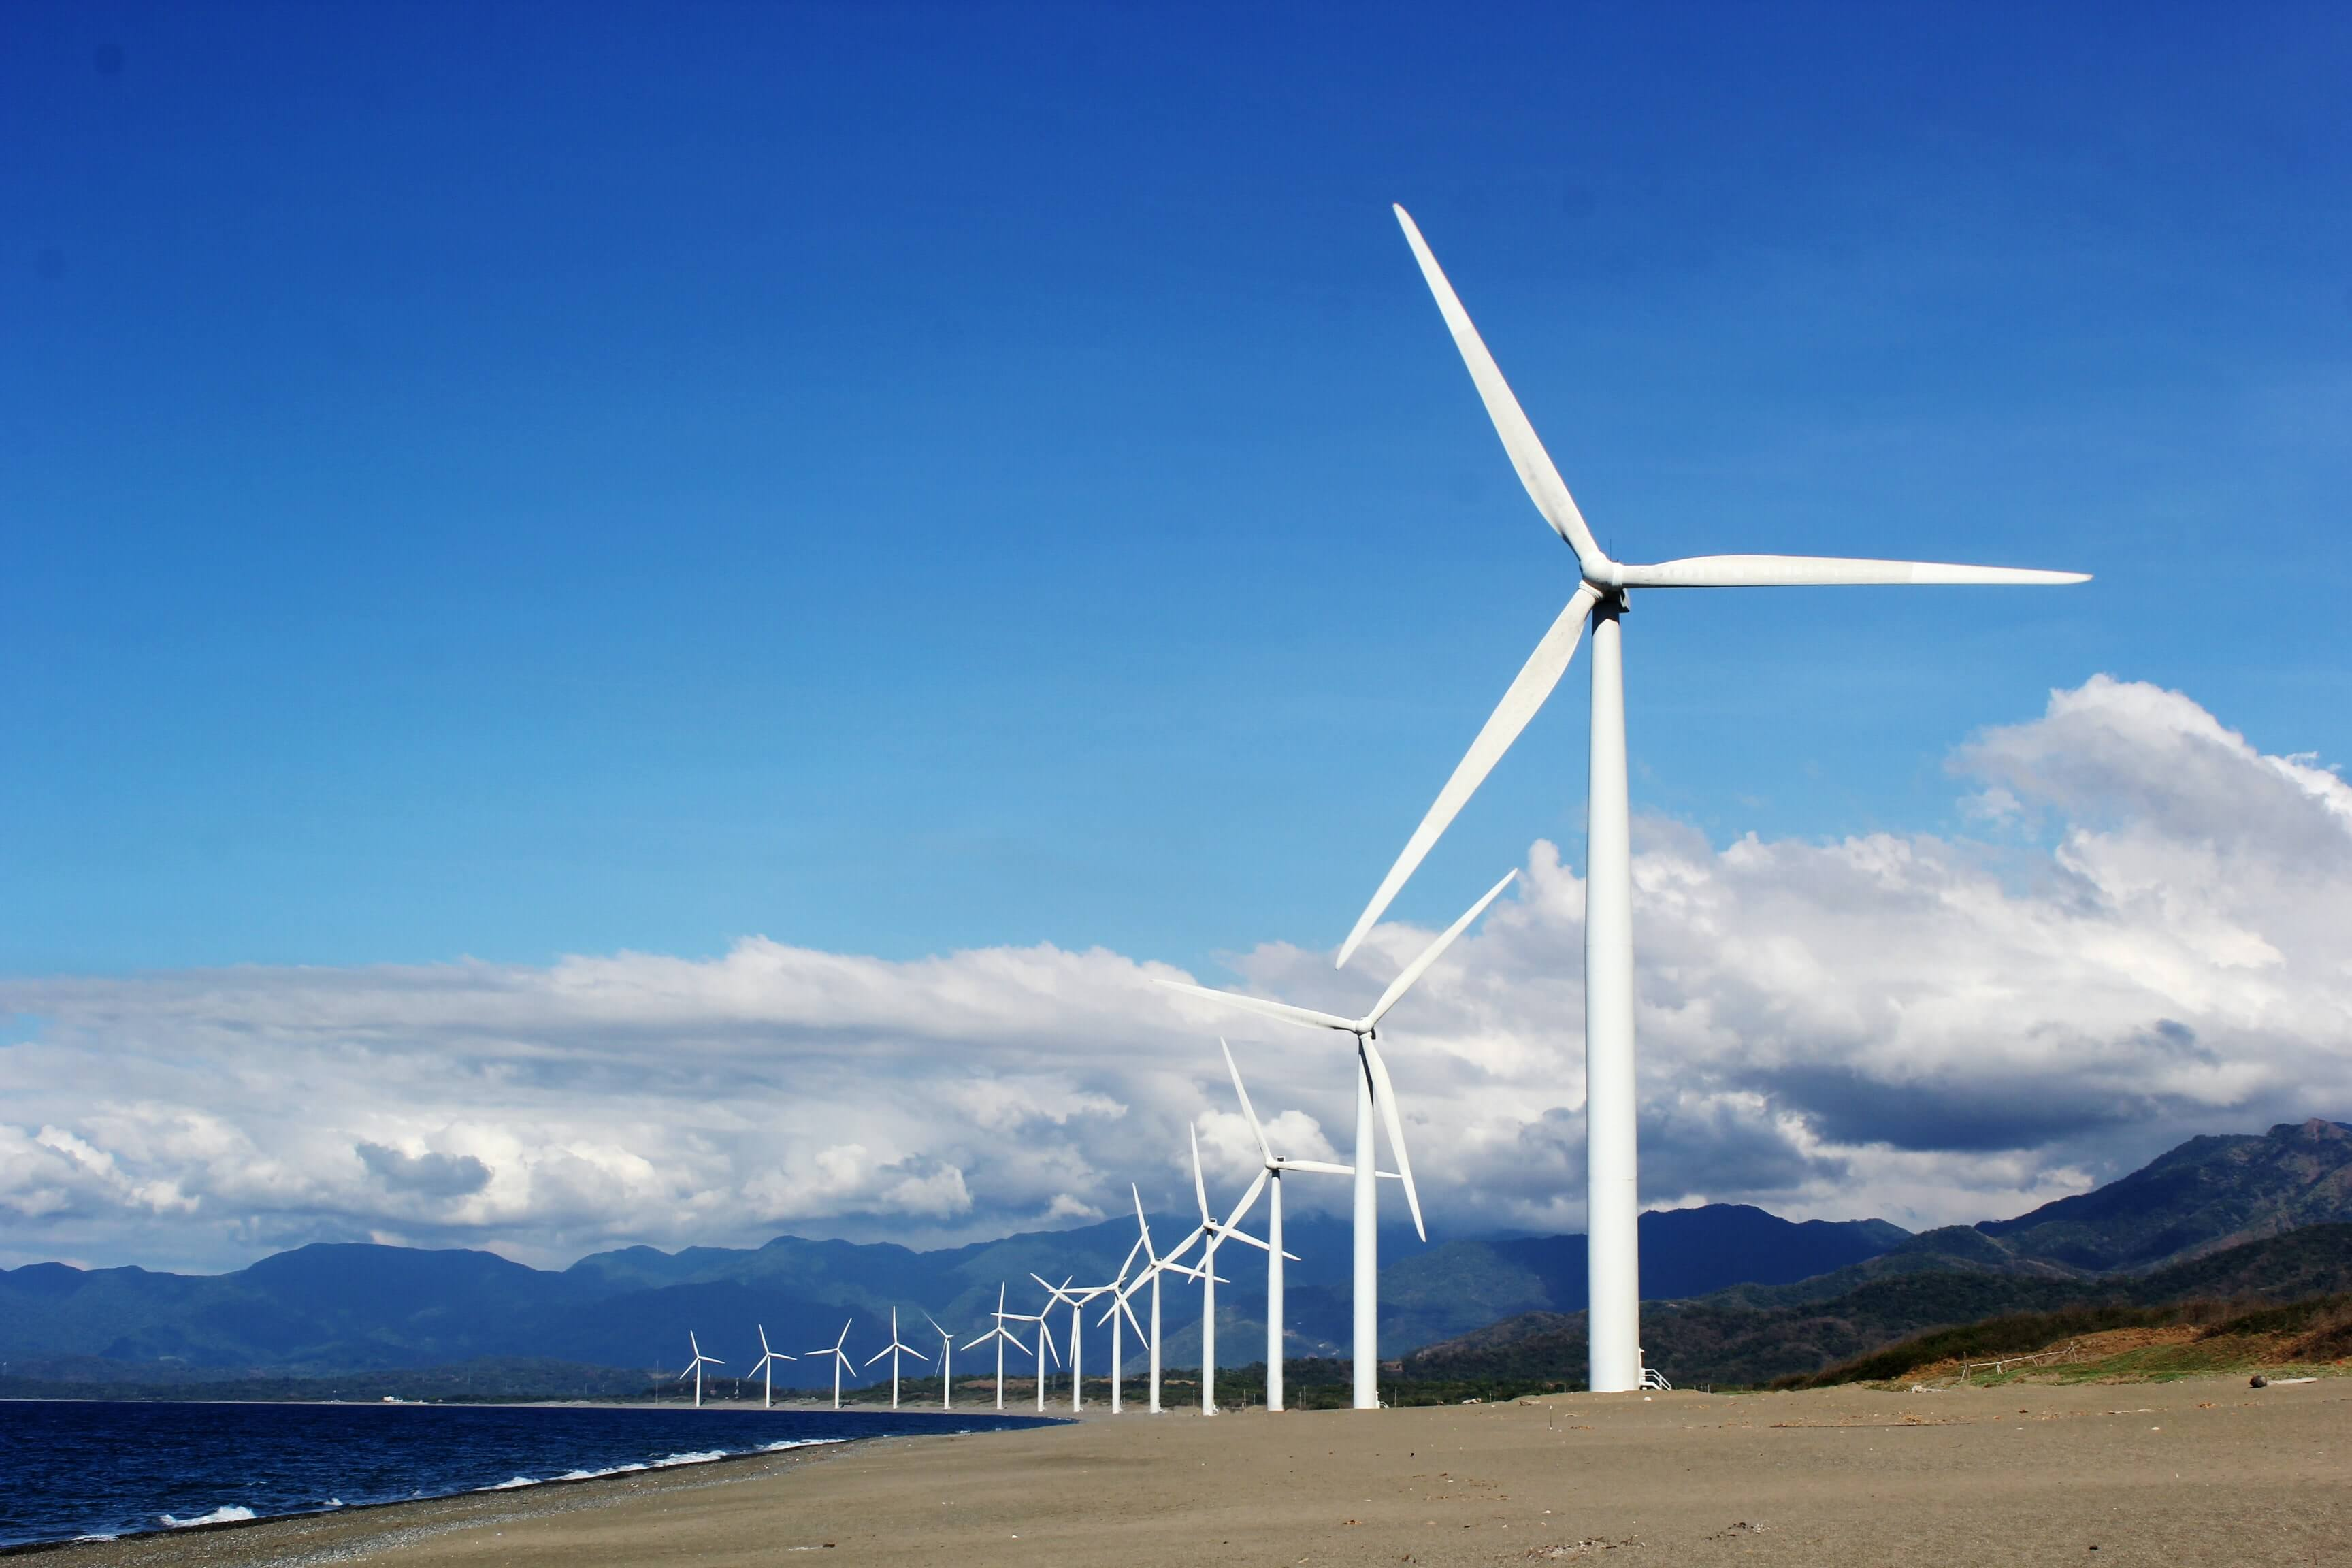 Vestas to Scale Down Production of V136 blades and Invest in Other Blade Types